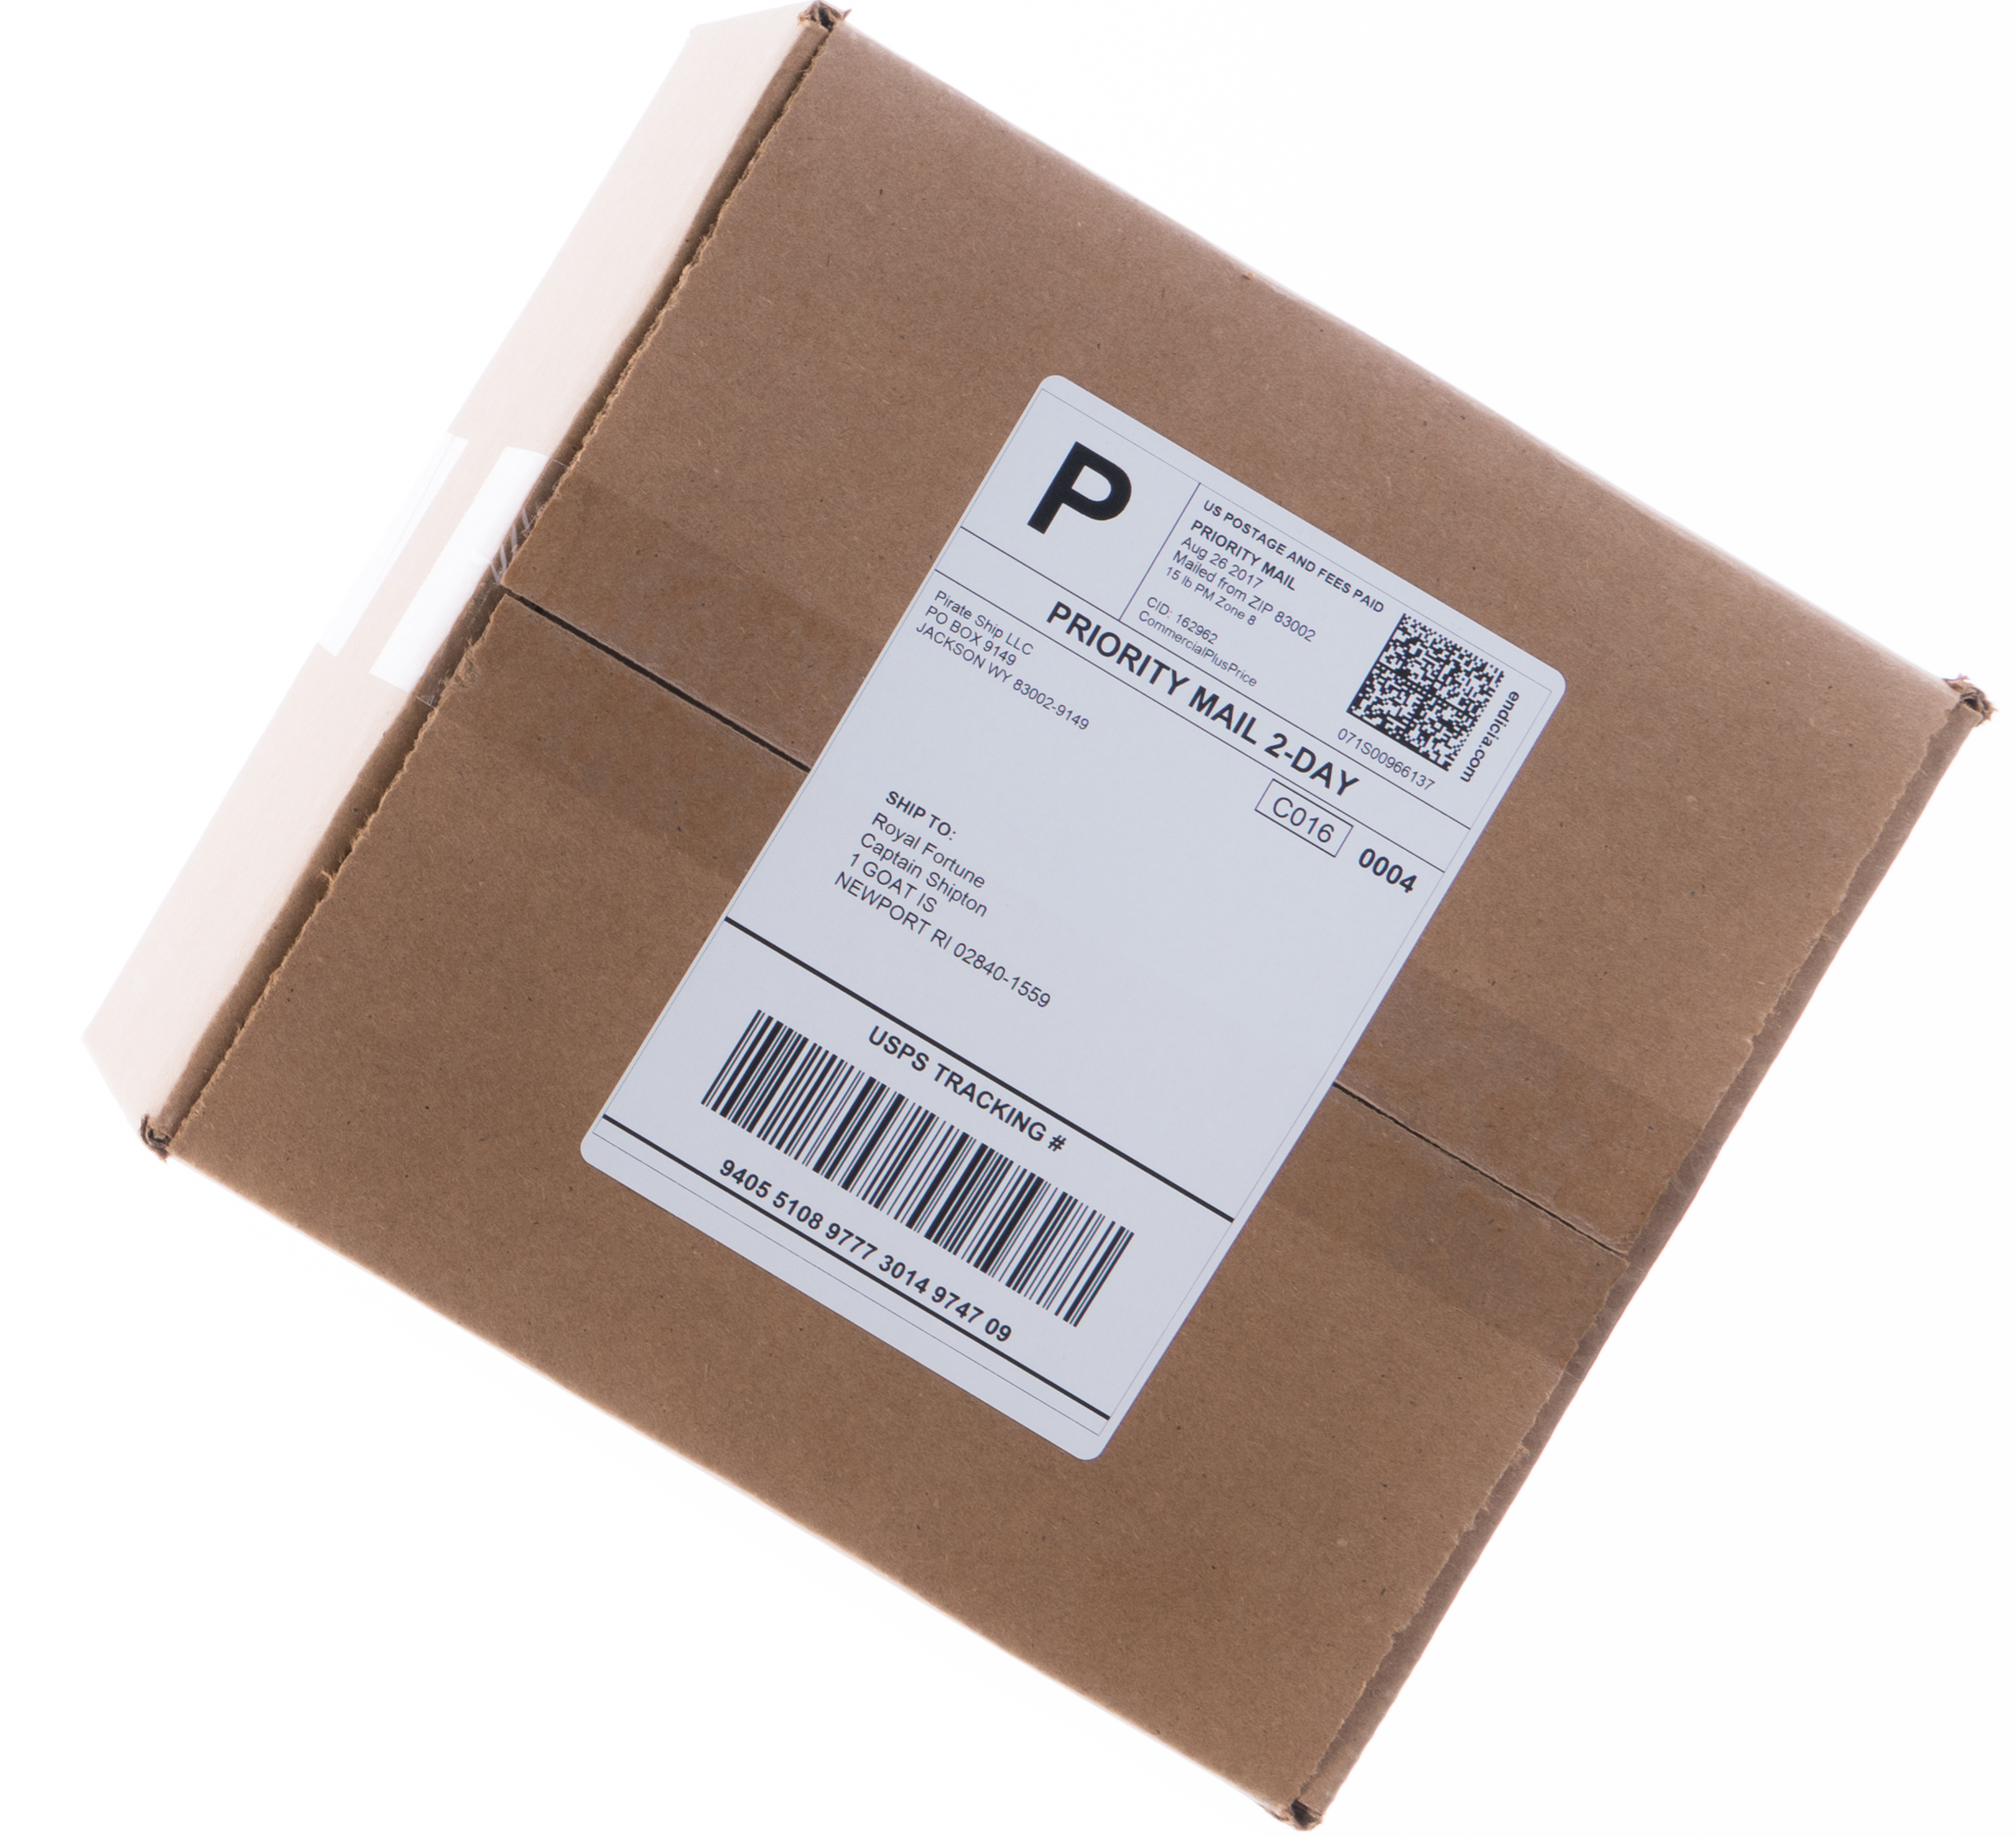 Priority Mail Cubic package